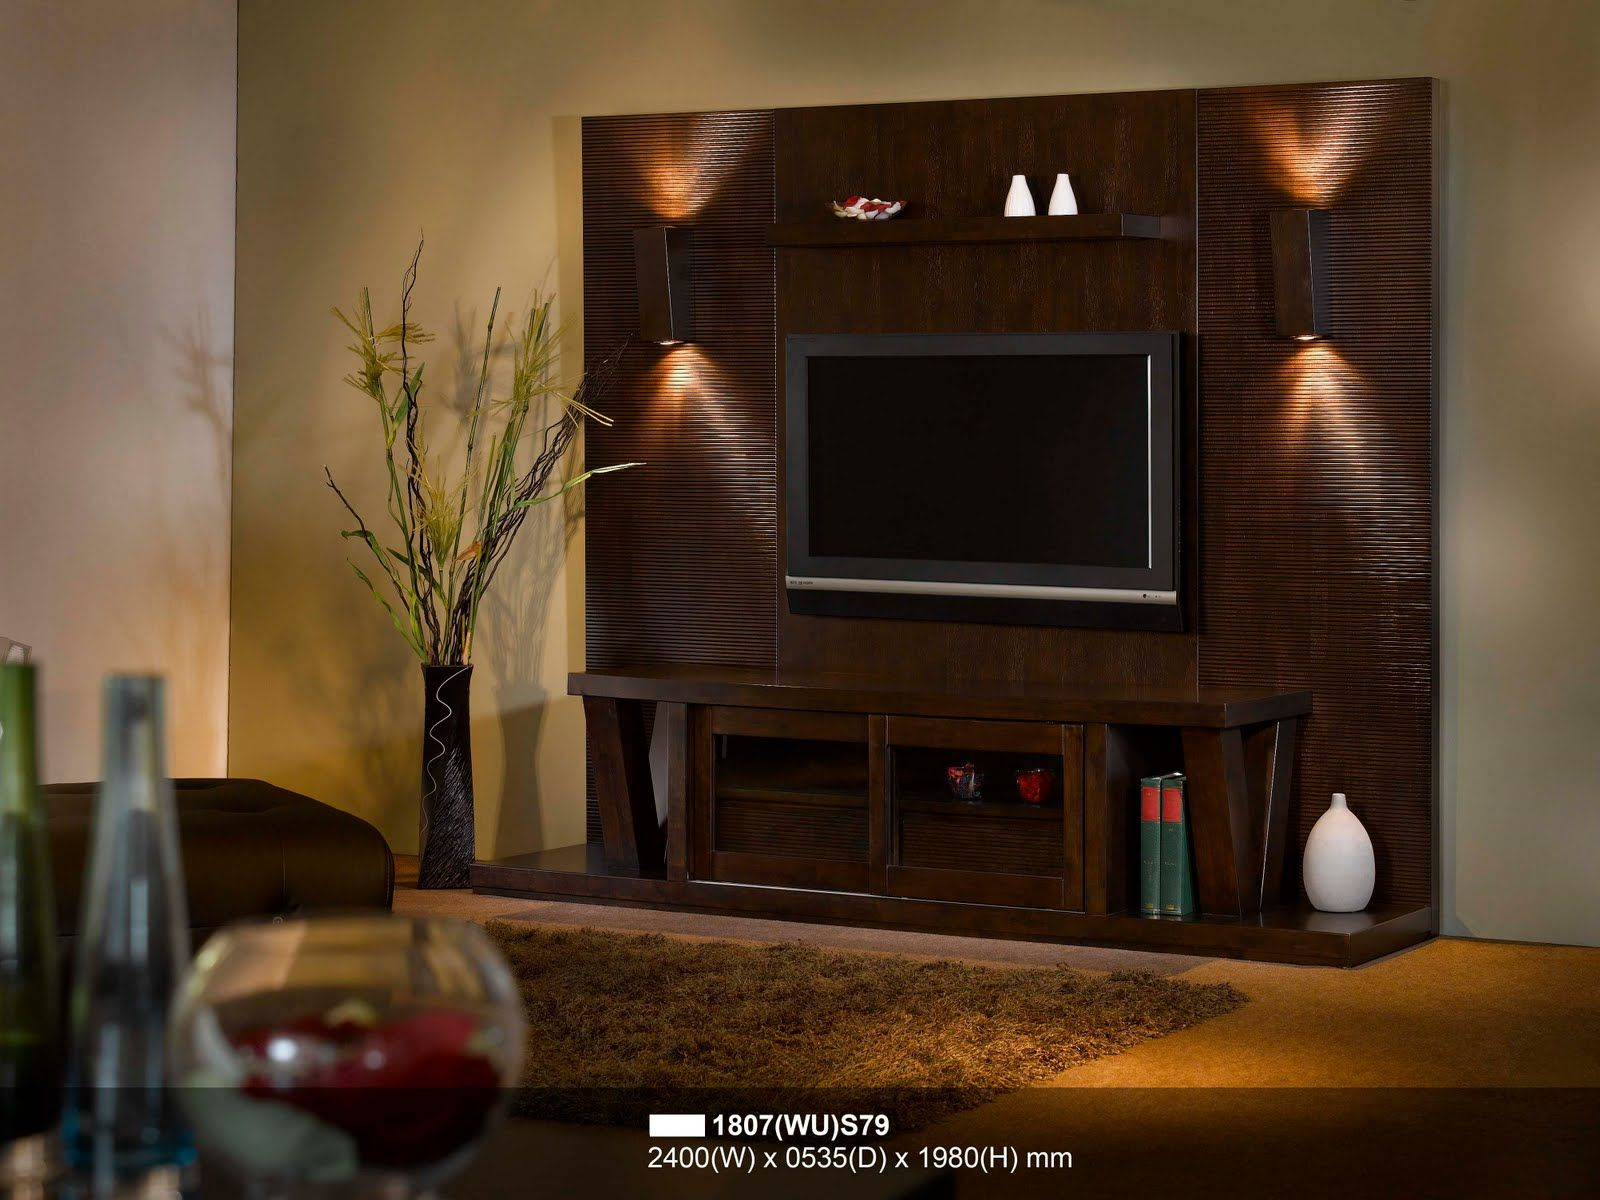 Modern wall units tv cucca home design wall unit tv for Modern tv unit design ideas